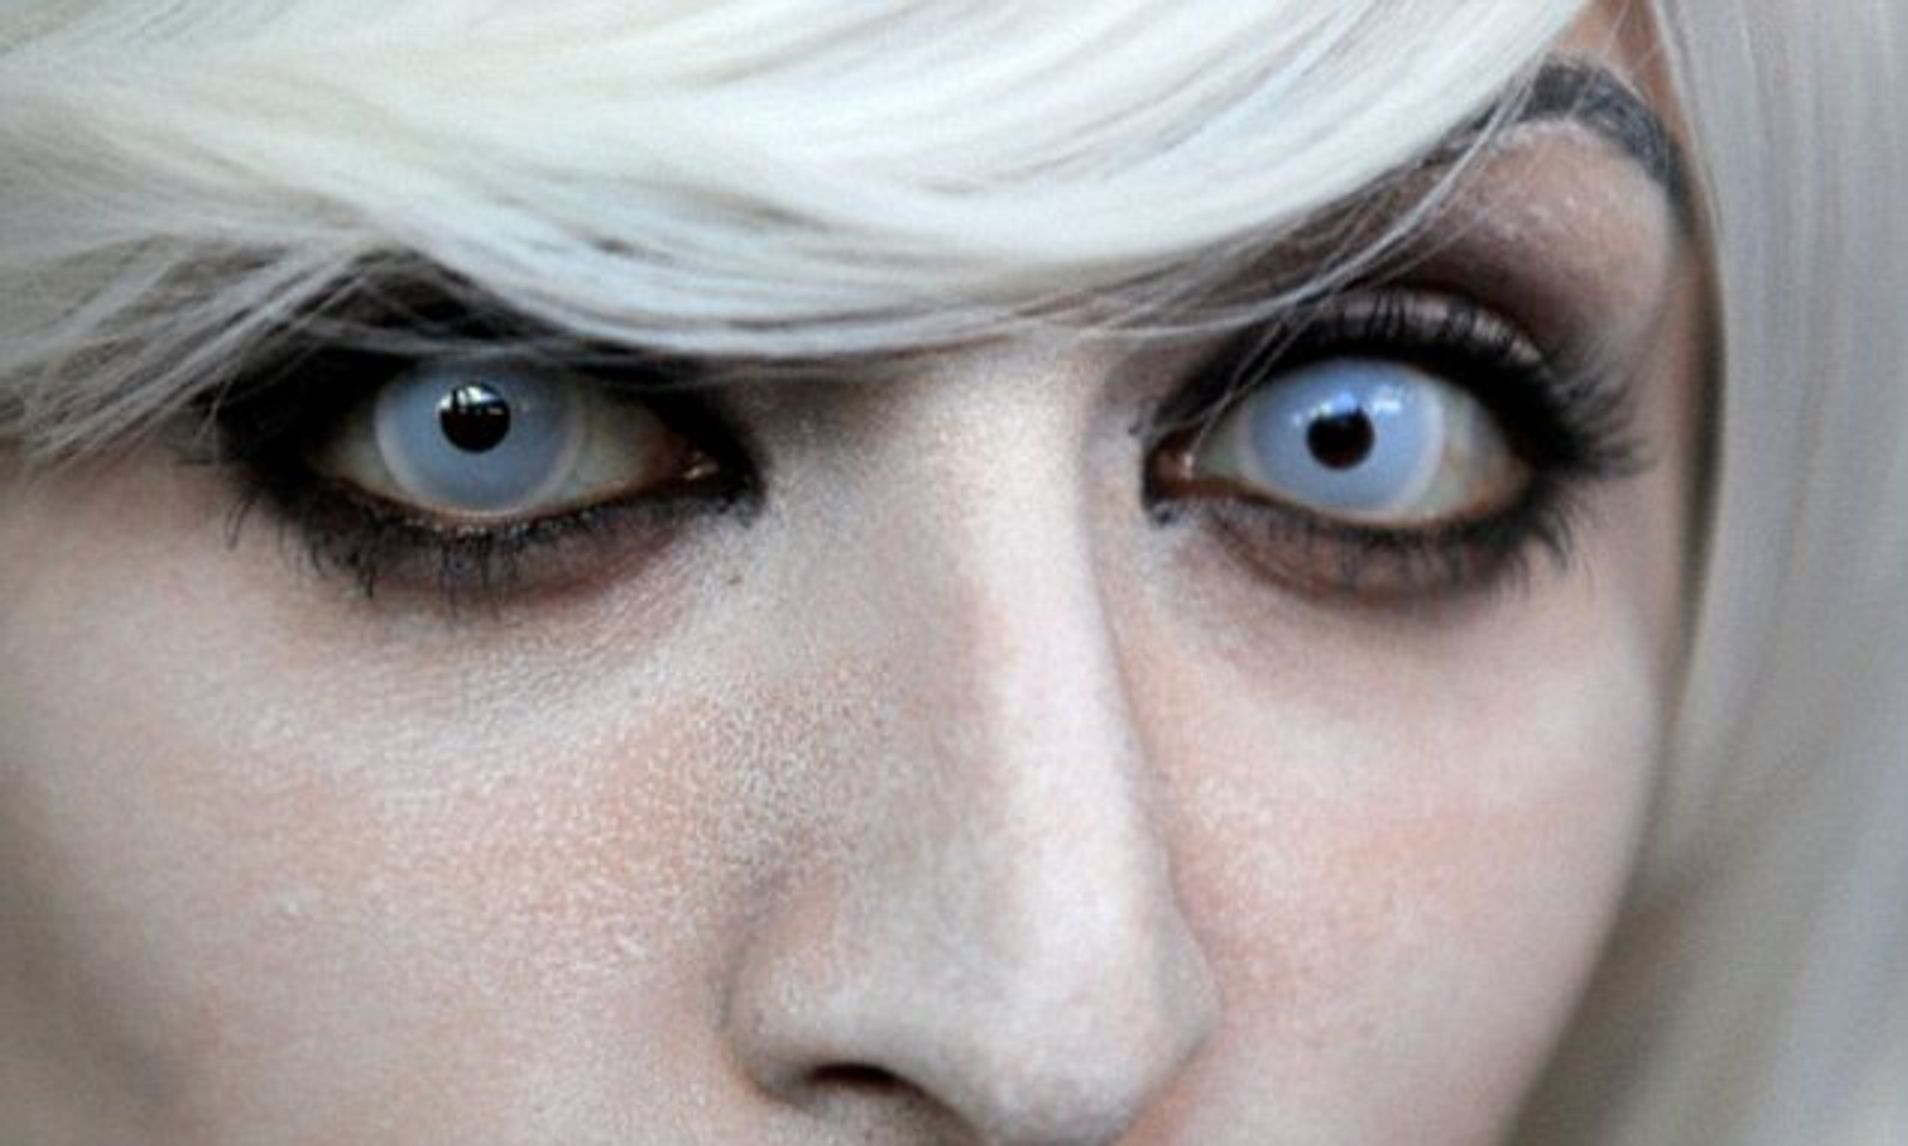 The best ways to create Magical Eyes with Crazy Contact Lenses